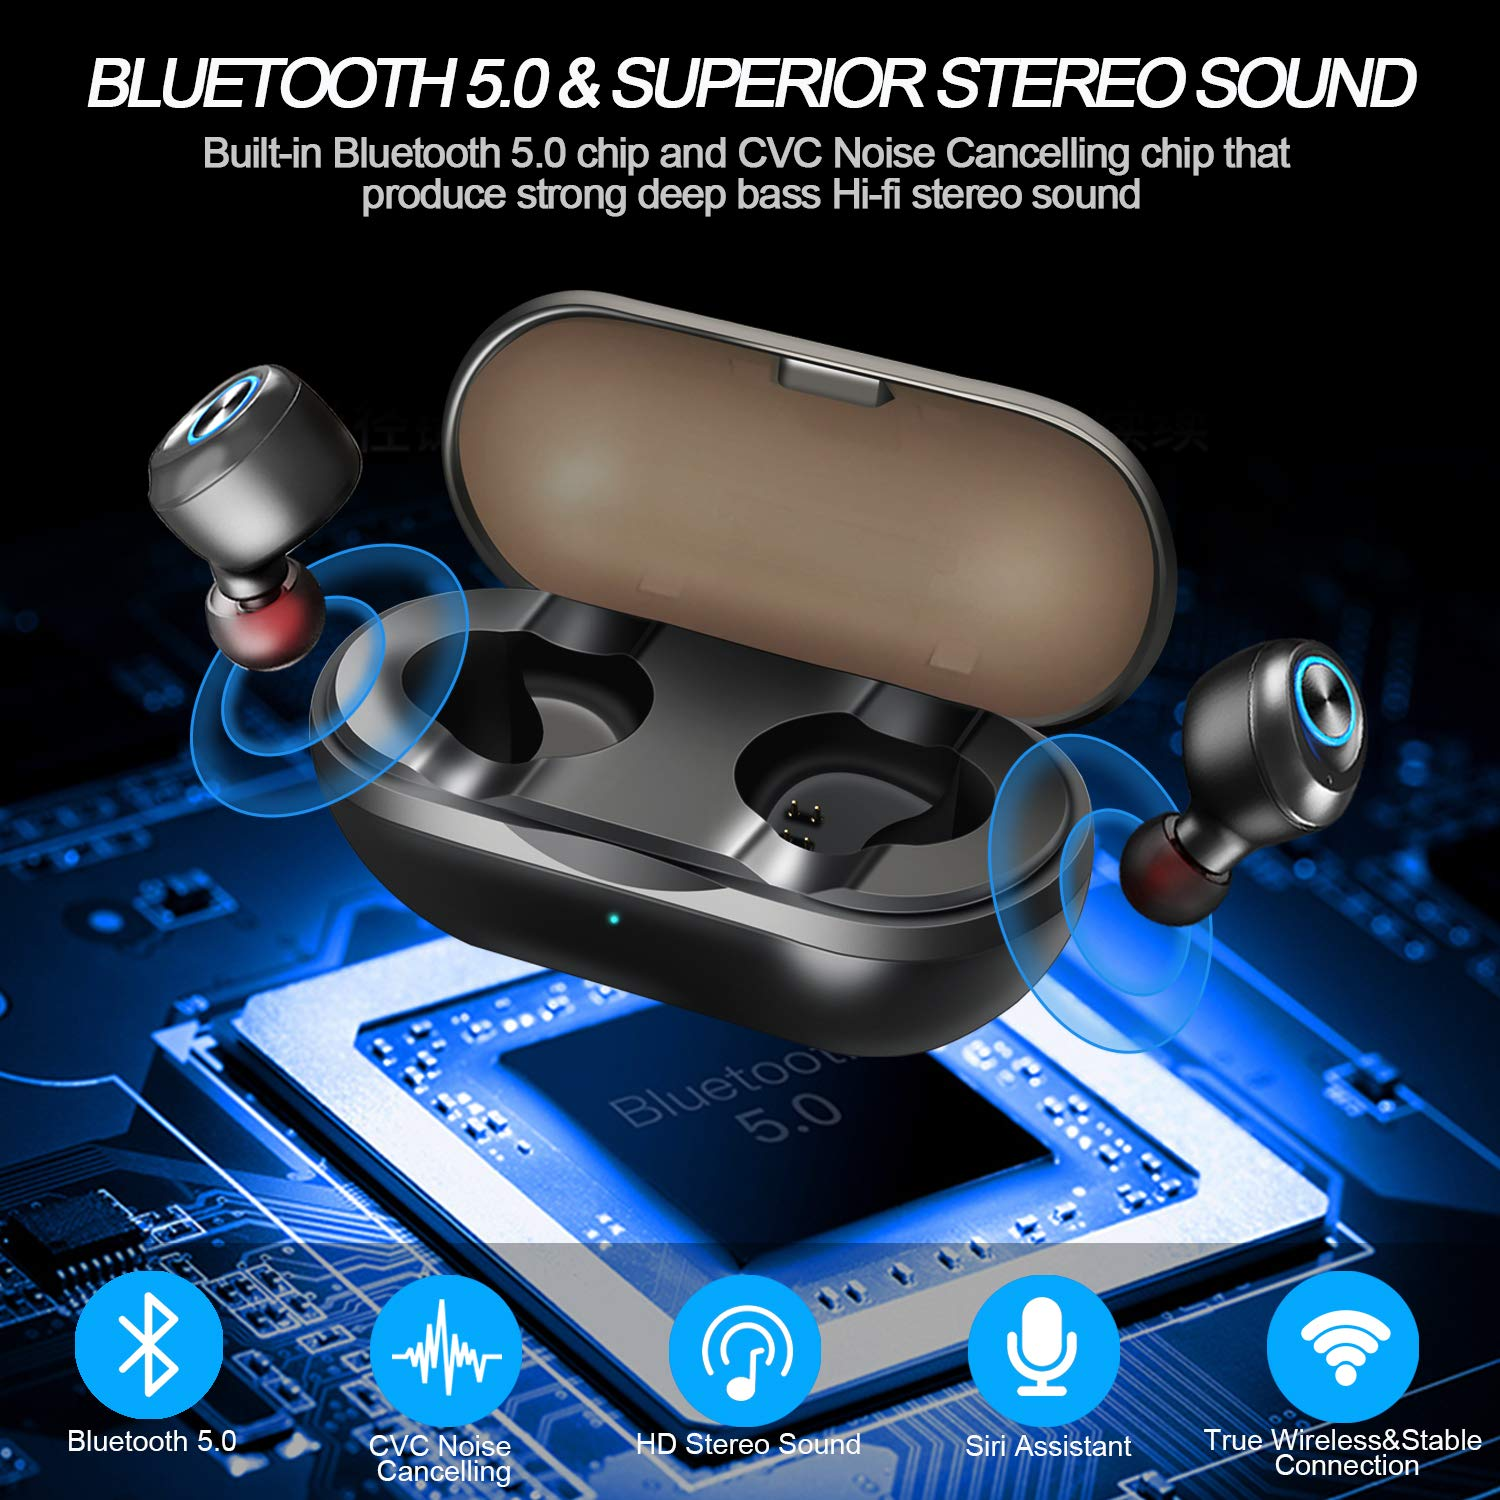 True Wireless Bluetooth Earbuds,True Wireless Earbuds Bluetooth 5.0 Headphones,TWS in-Ear Earphones Deep Bass Built-in Mic Headset IPX5 Sweatproof Noise Cancelling One-Step Pairing Mini Charging Case